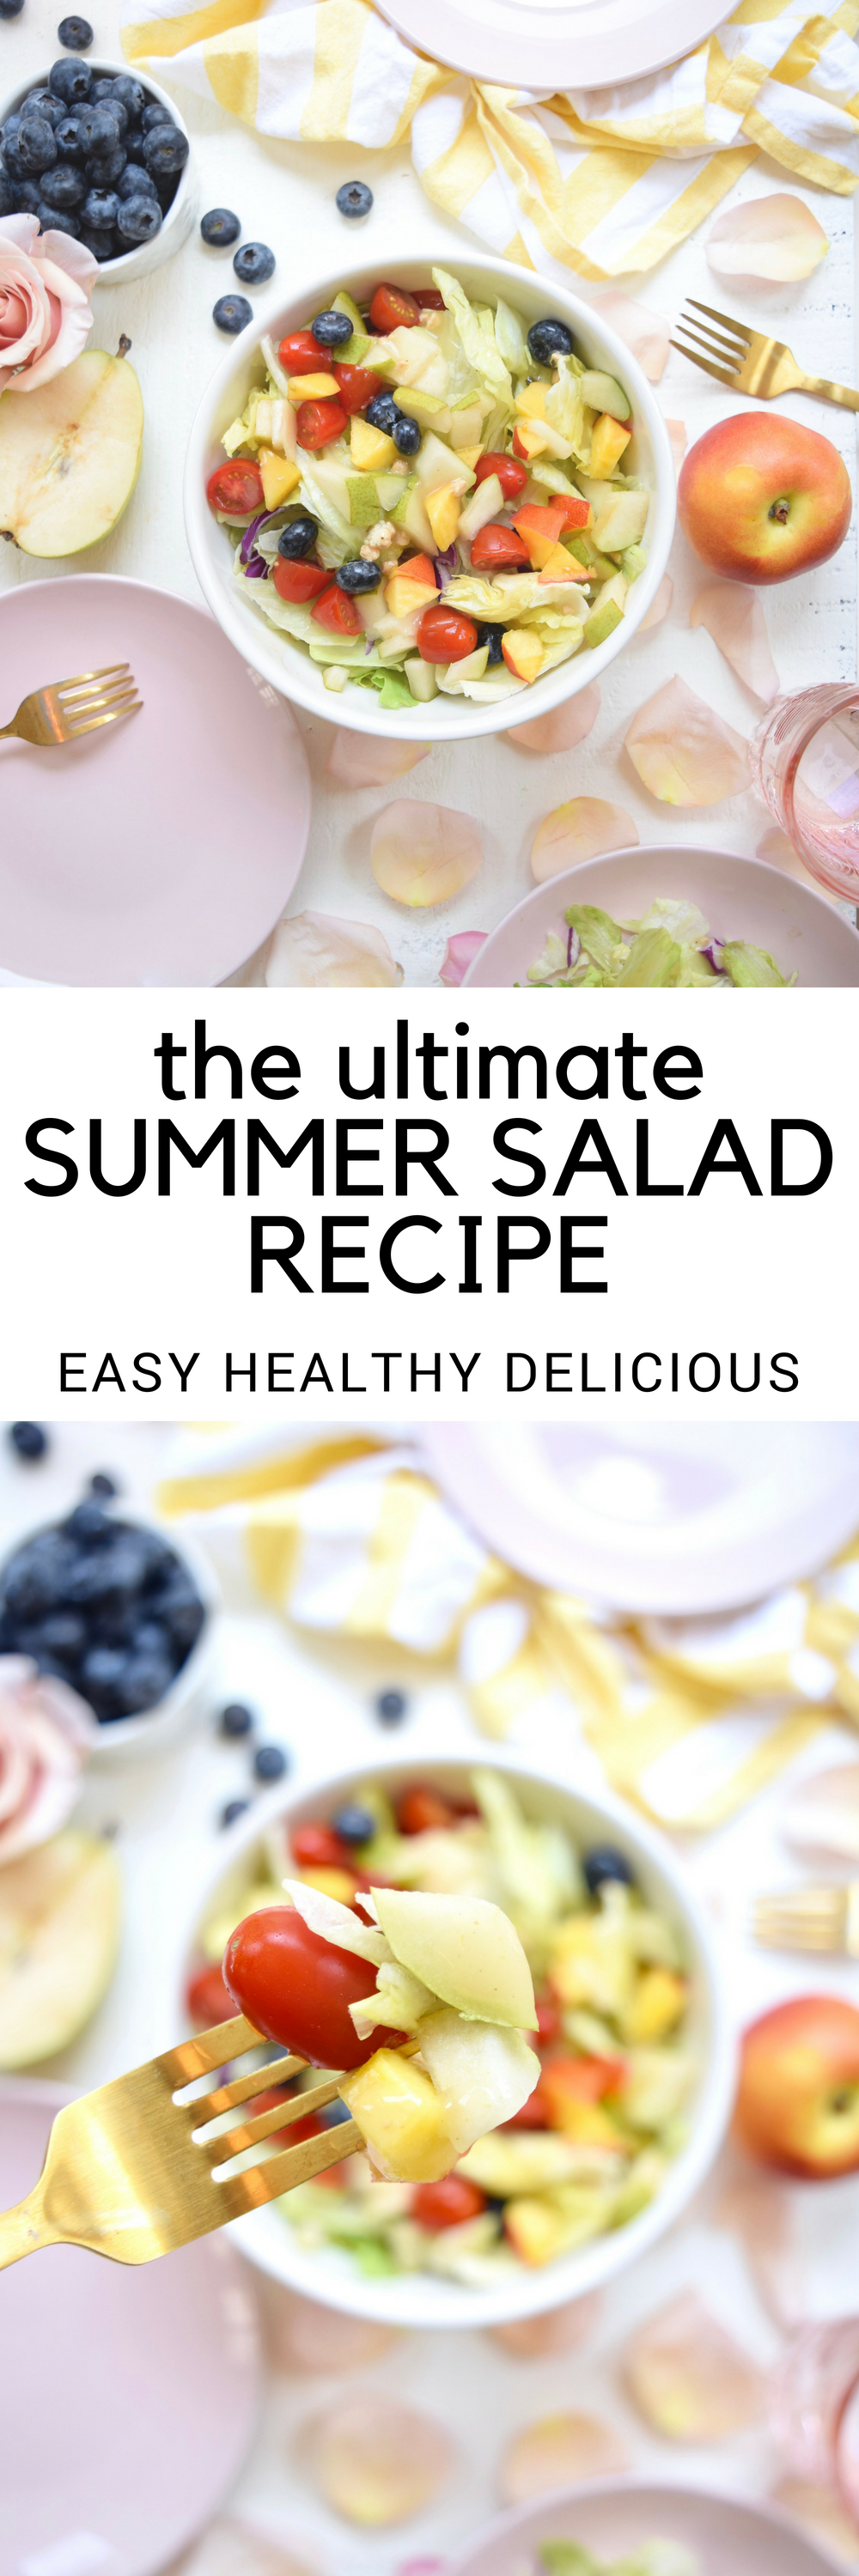 the ultimateSUMMER SALAD RECIPE